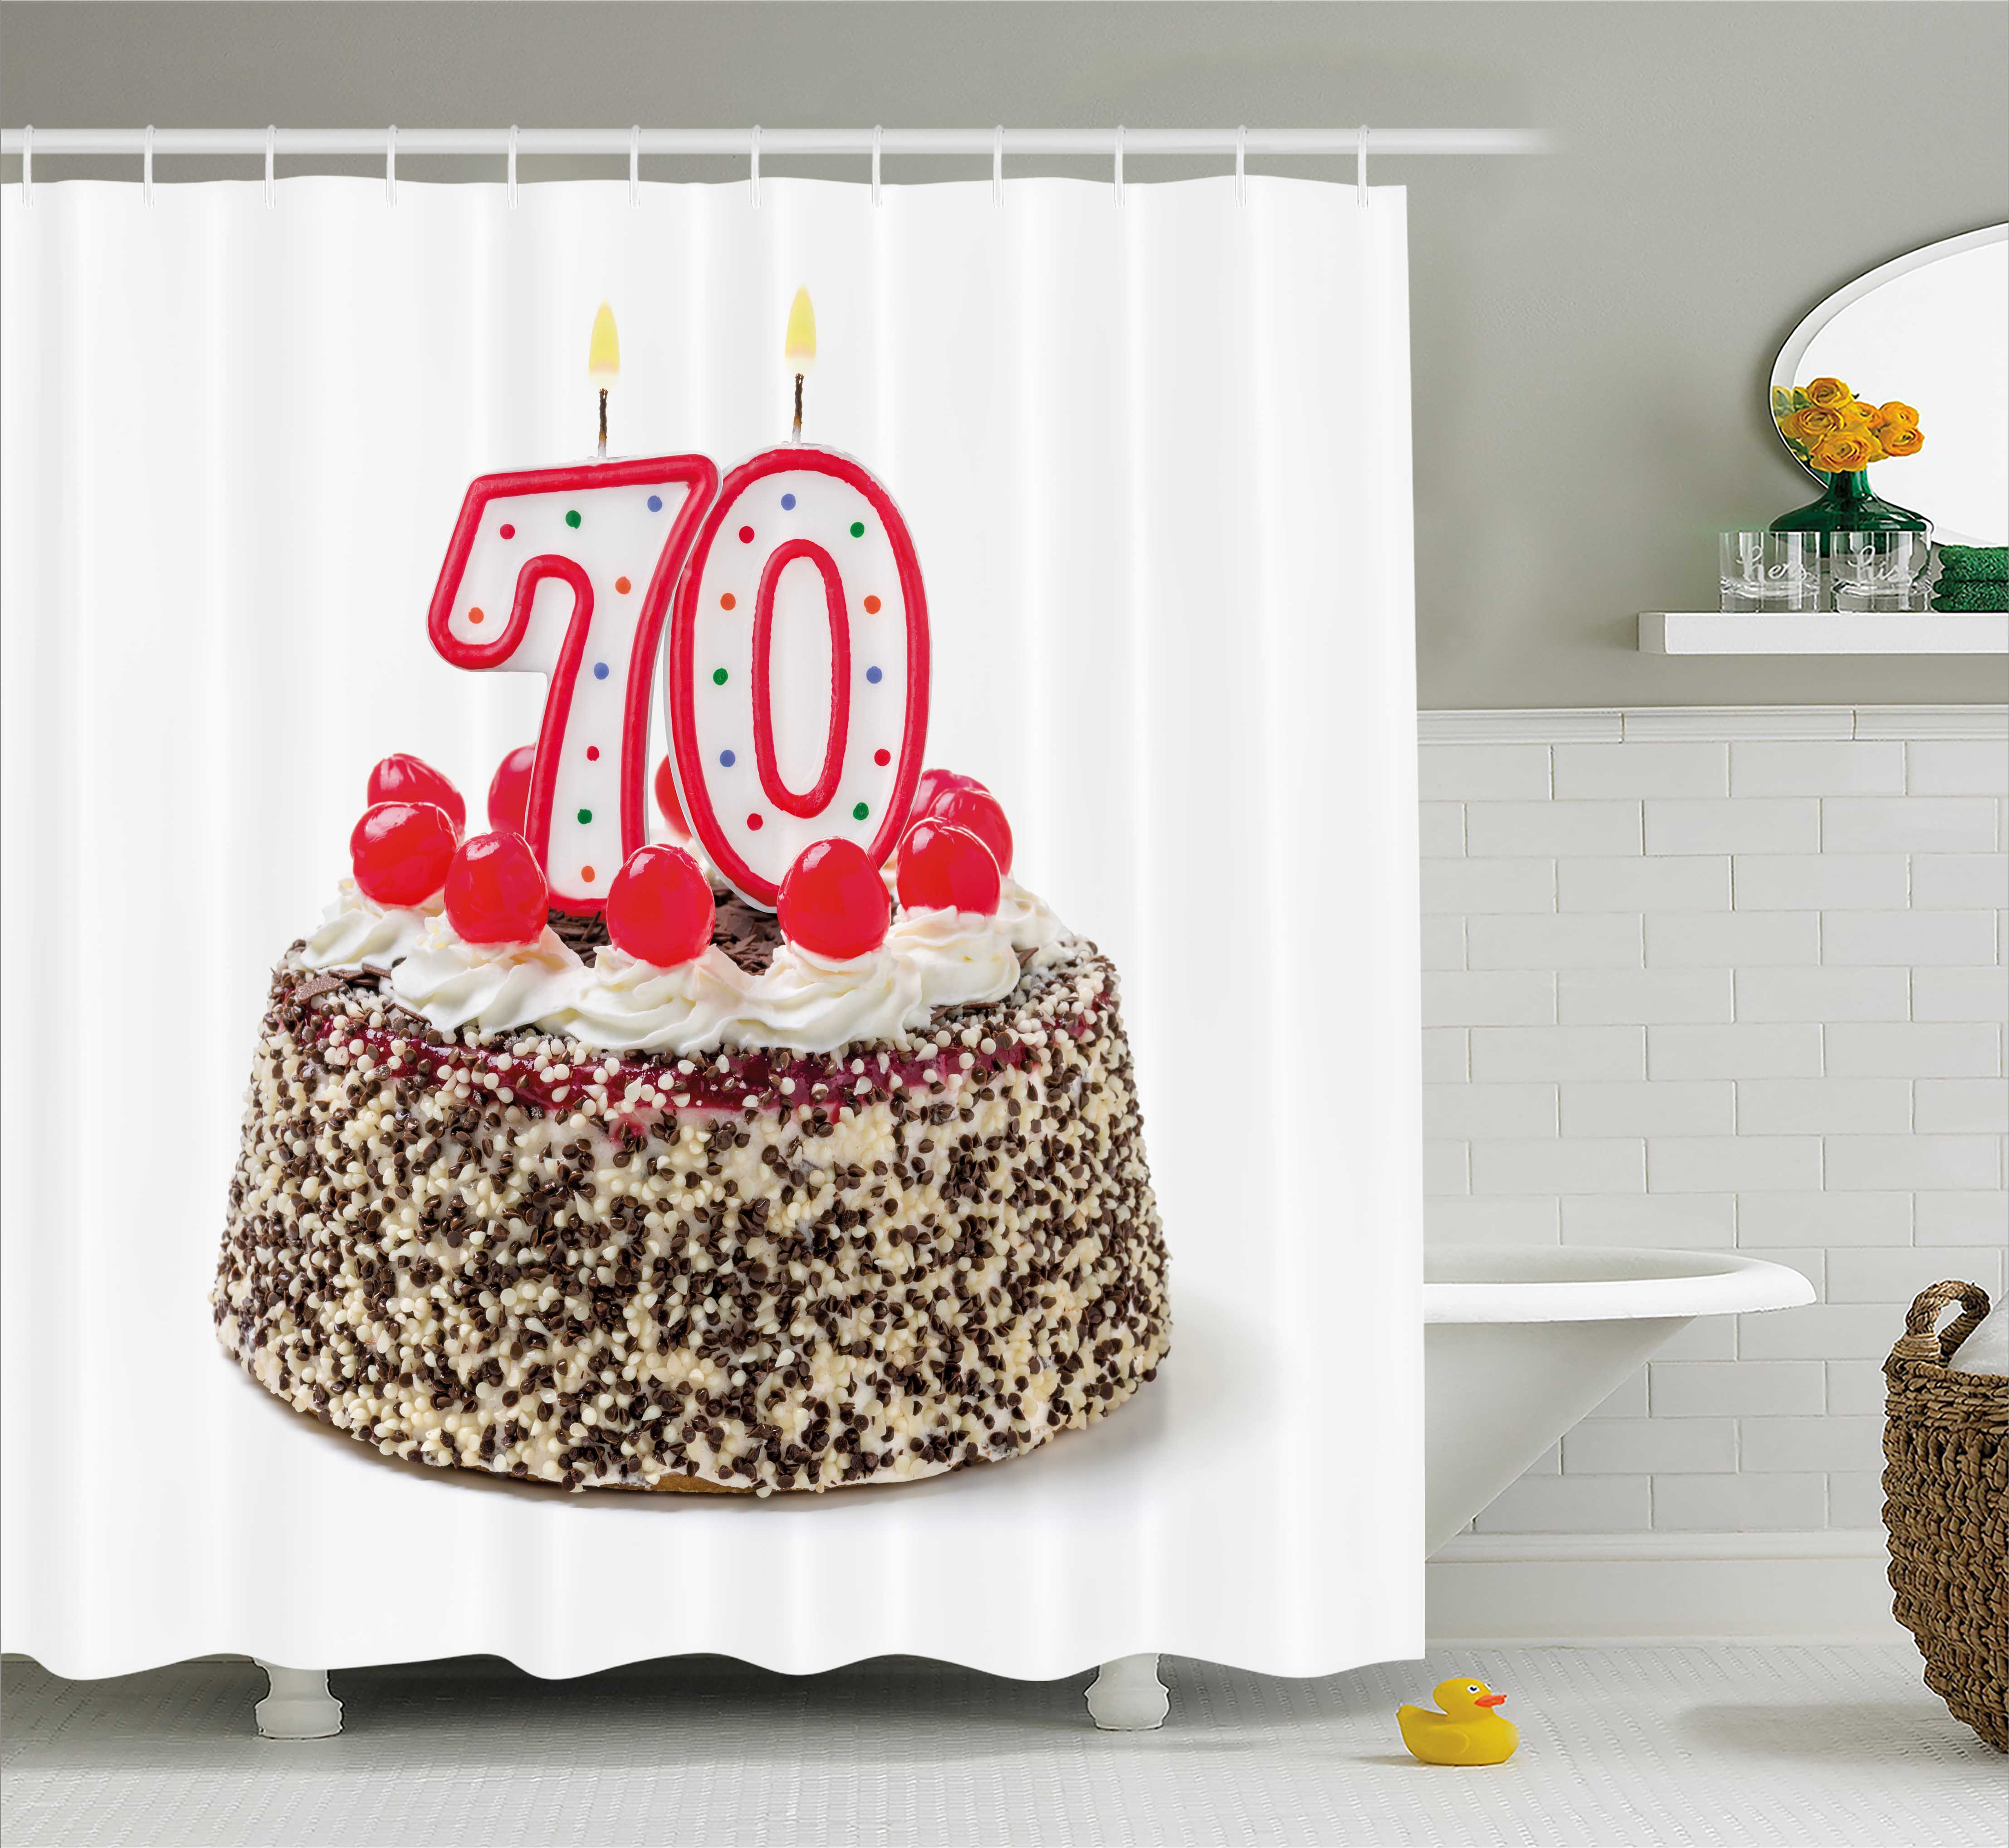 70th Birthday Decorations Shower Curtain Cake With 70 Number Candles Sprinkles Party Photo Image Fabric Bathroom Set Hooks 69W X 70L Inches